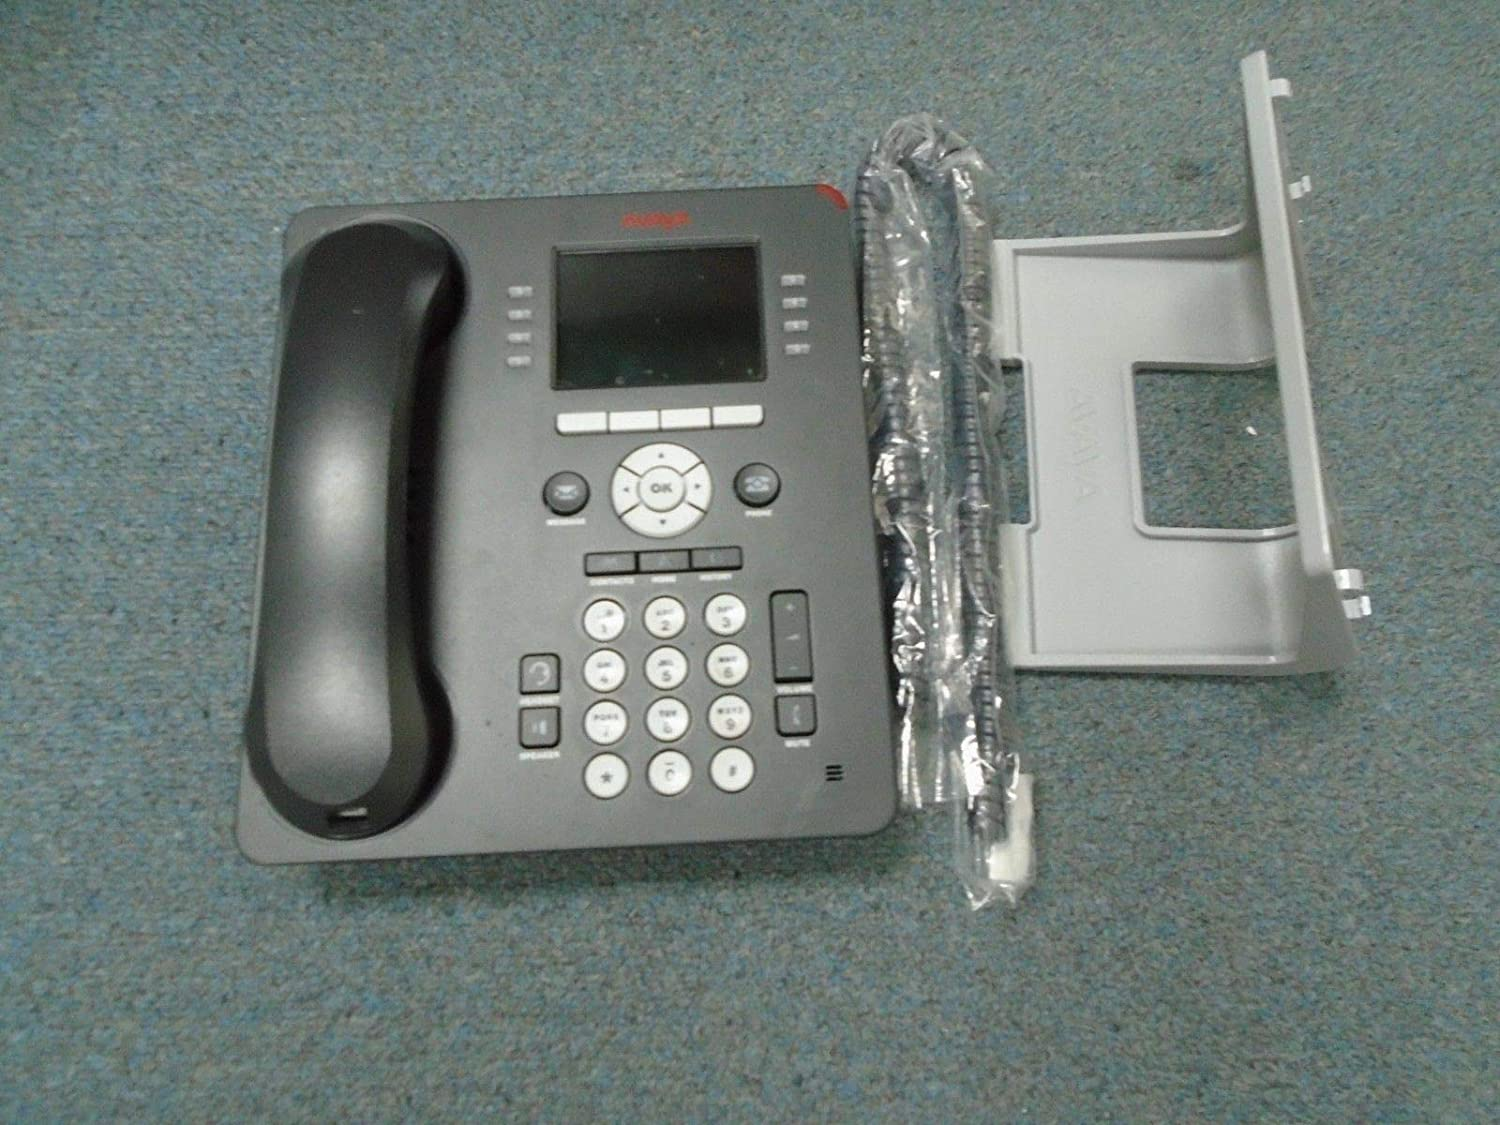 Avaya 9620L in Black Office Business Phone Deskphone VoIP IP Telephone 700461197